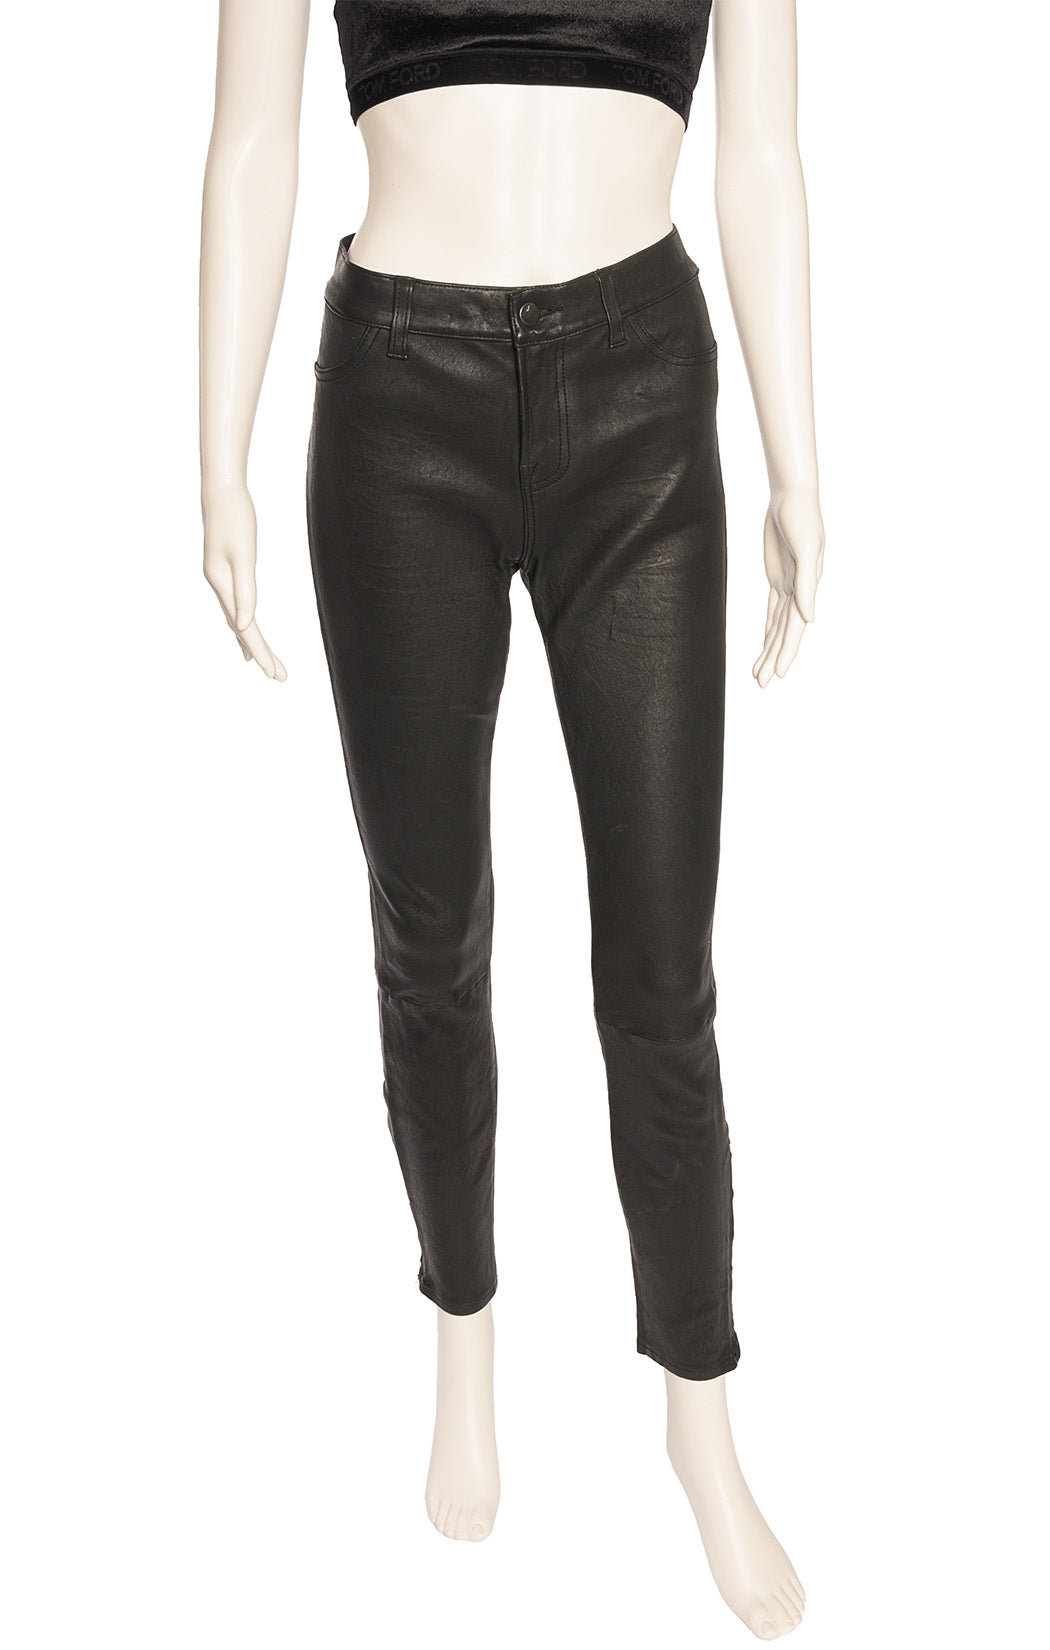 "Front view of J BRAND Leather pants Size: 29"" W"